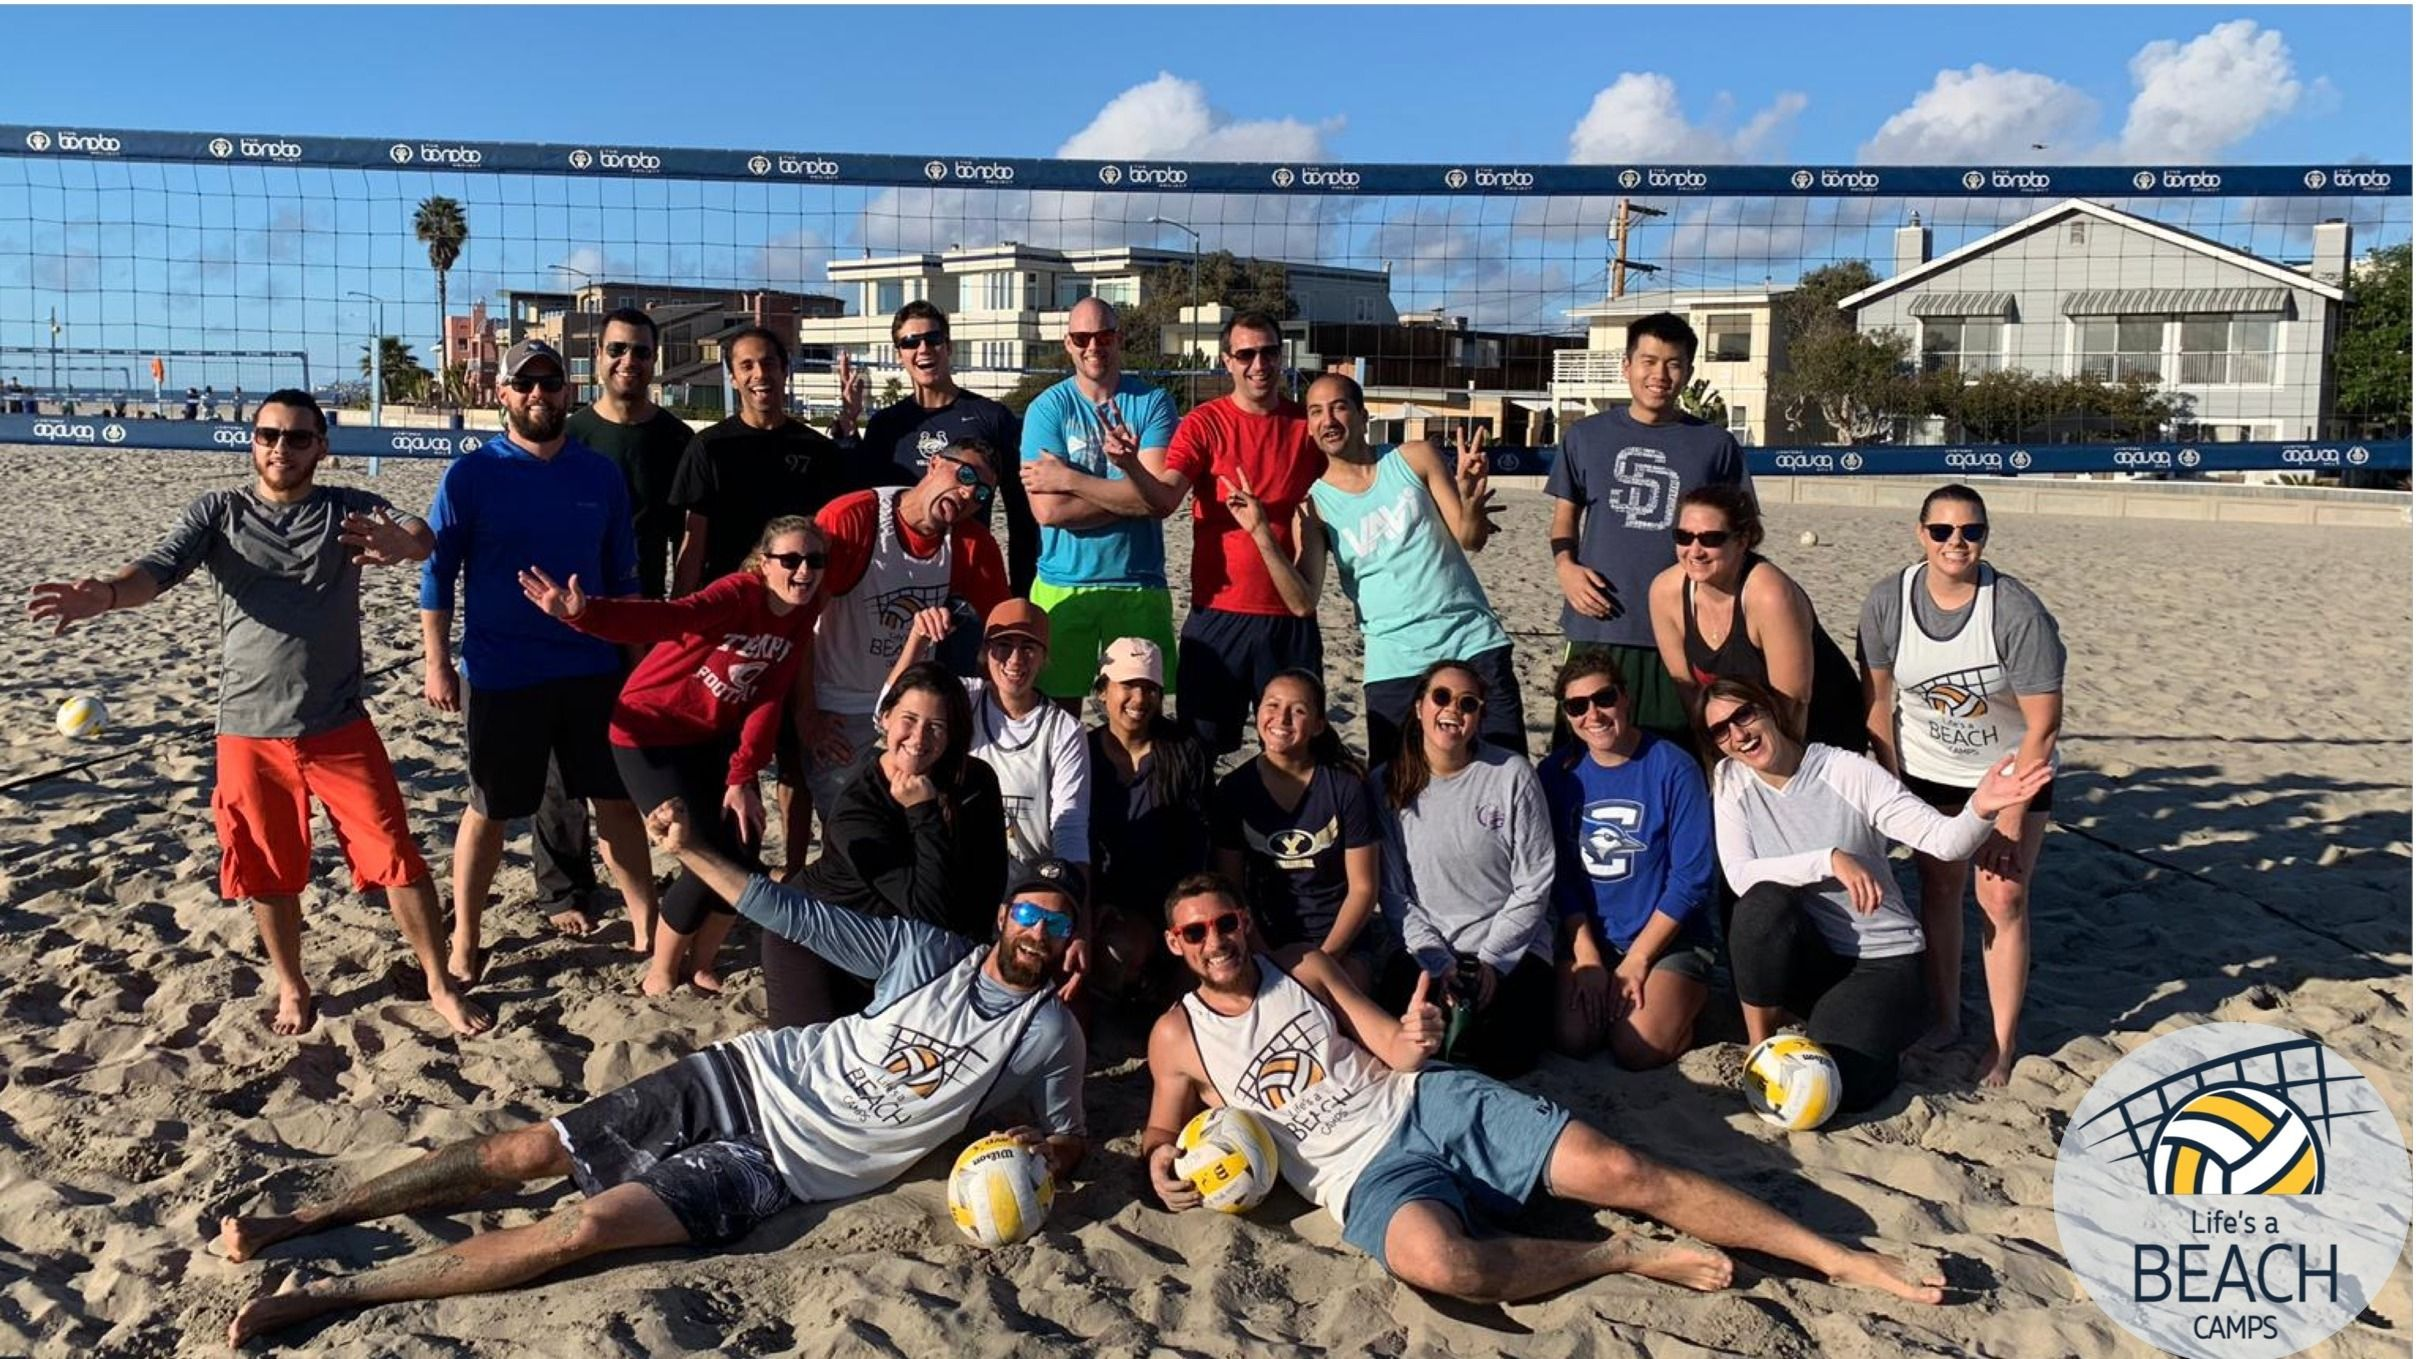 Learn & Play Beach Volleyball Meetup! Life's A Beach Camps